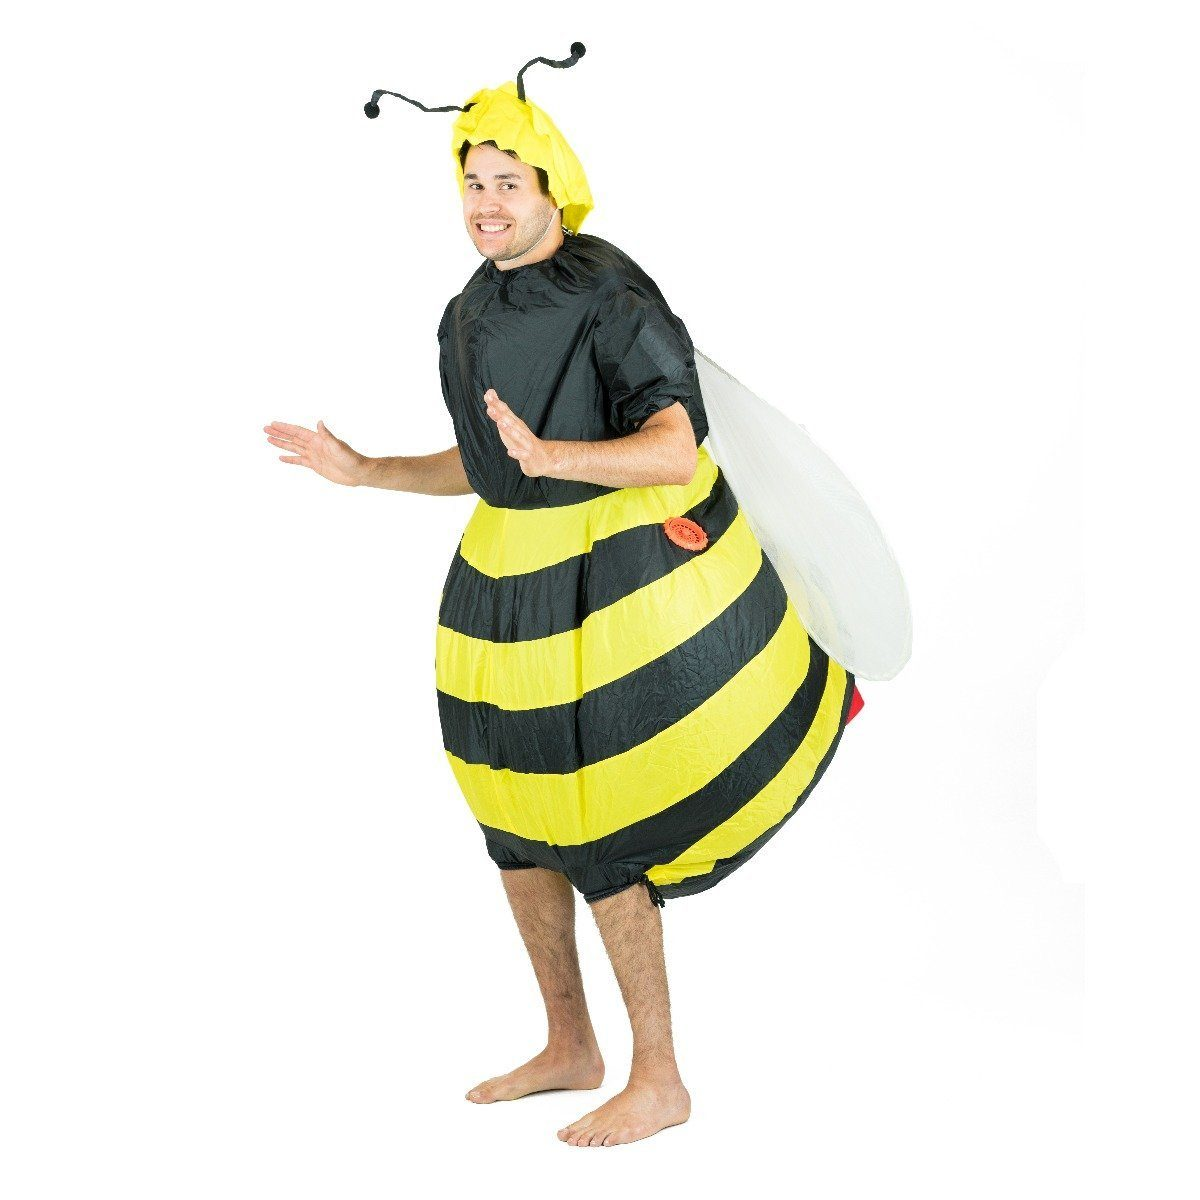 d46495f6c3e4 ... Fancy Dress - Inflatable Bee Costume ...